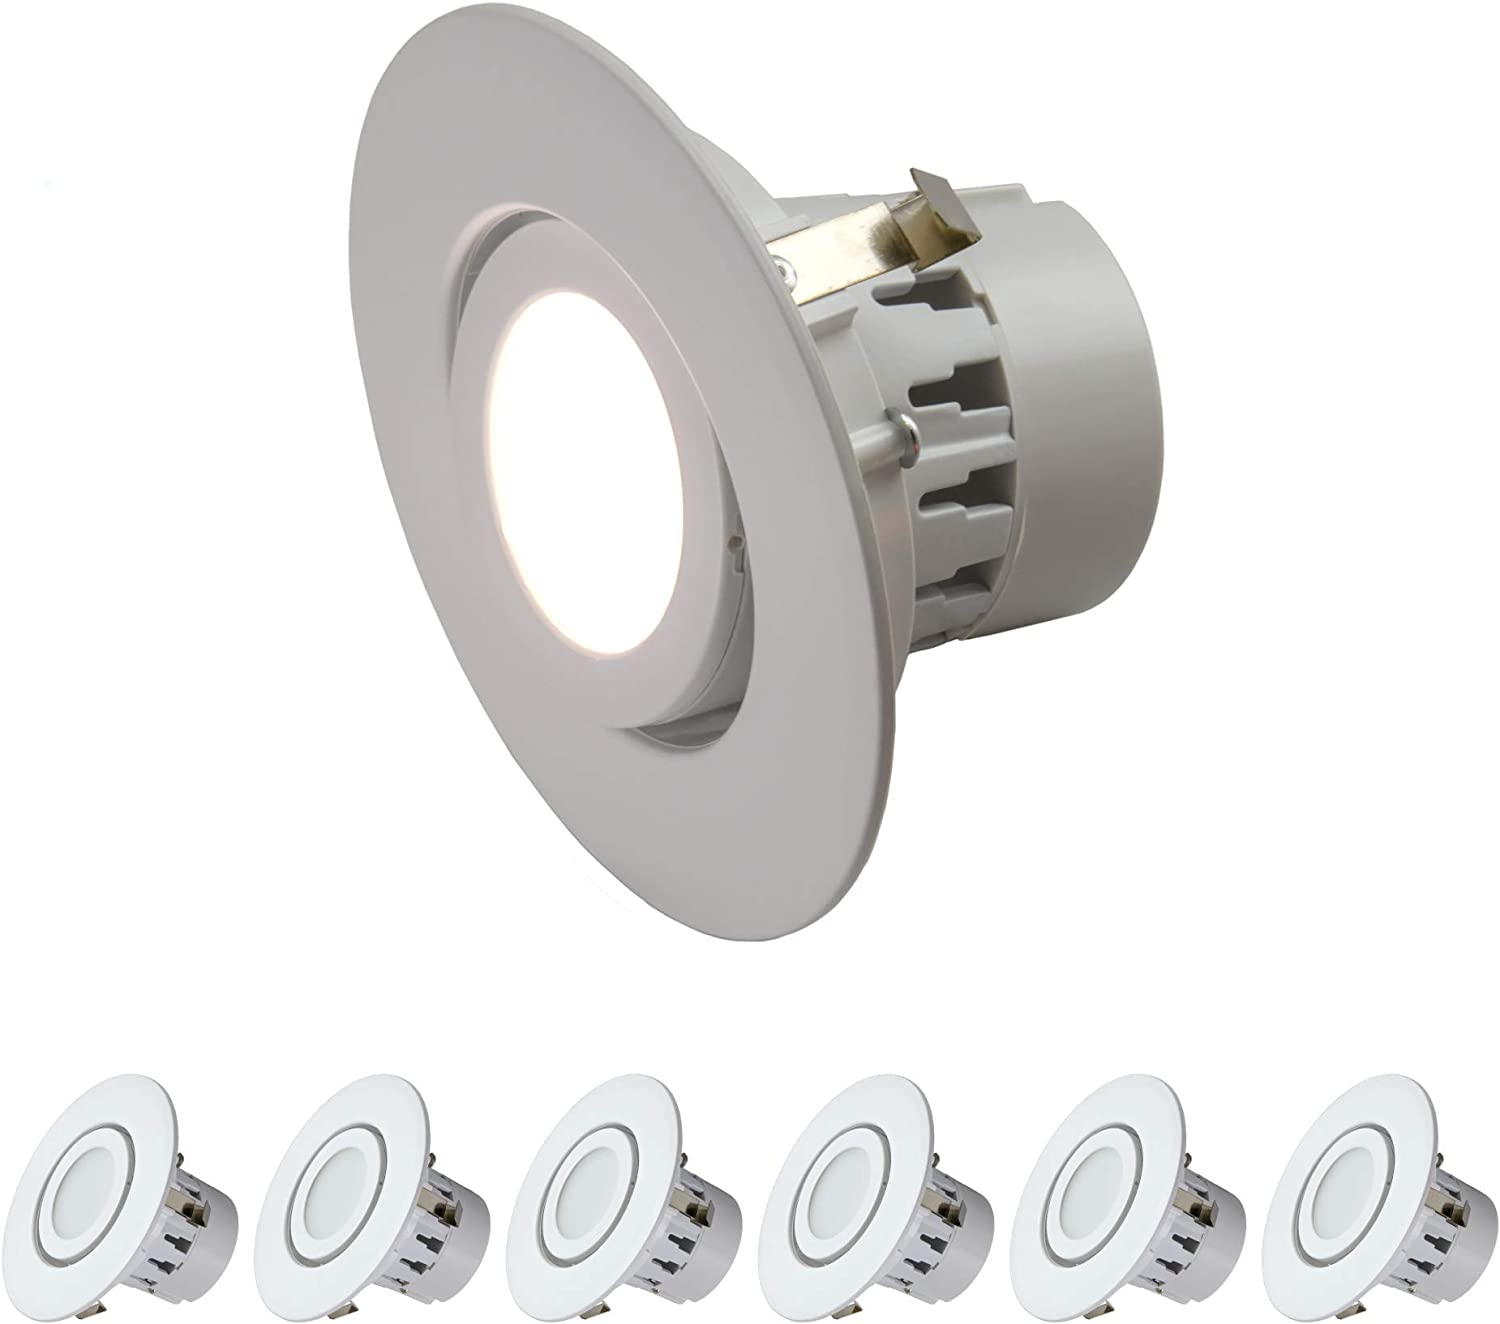 4  Inch LED Gimbal Adjustable redating Downlight (6 Pack) 10W= (75w Equivalent) Wet Loaction Rated; 25,000 Life Hours; Dimmable; Daylight 4000K; 10 Year Warranty